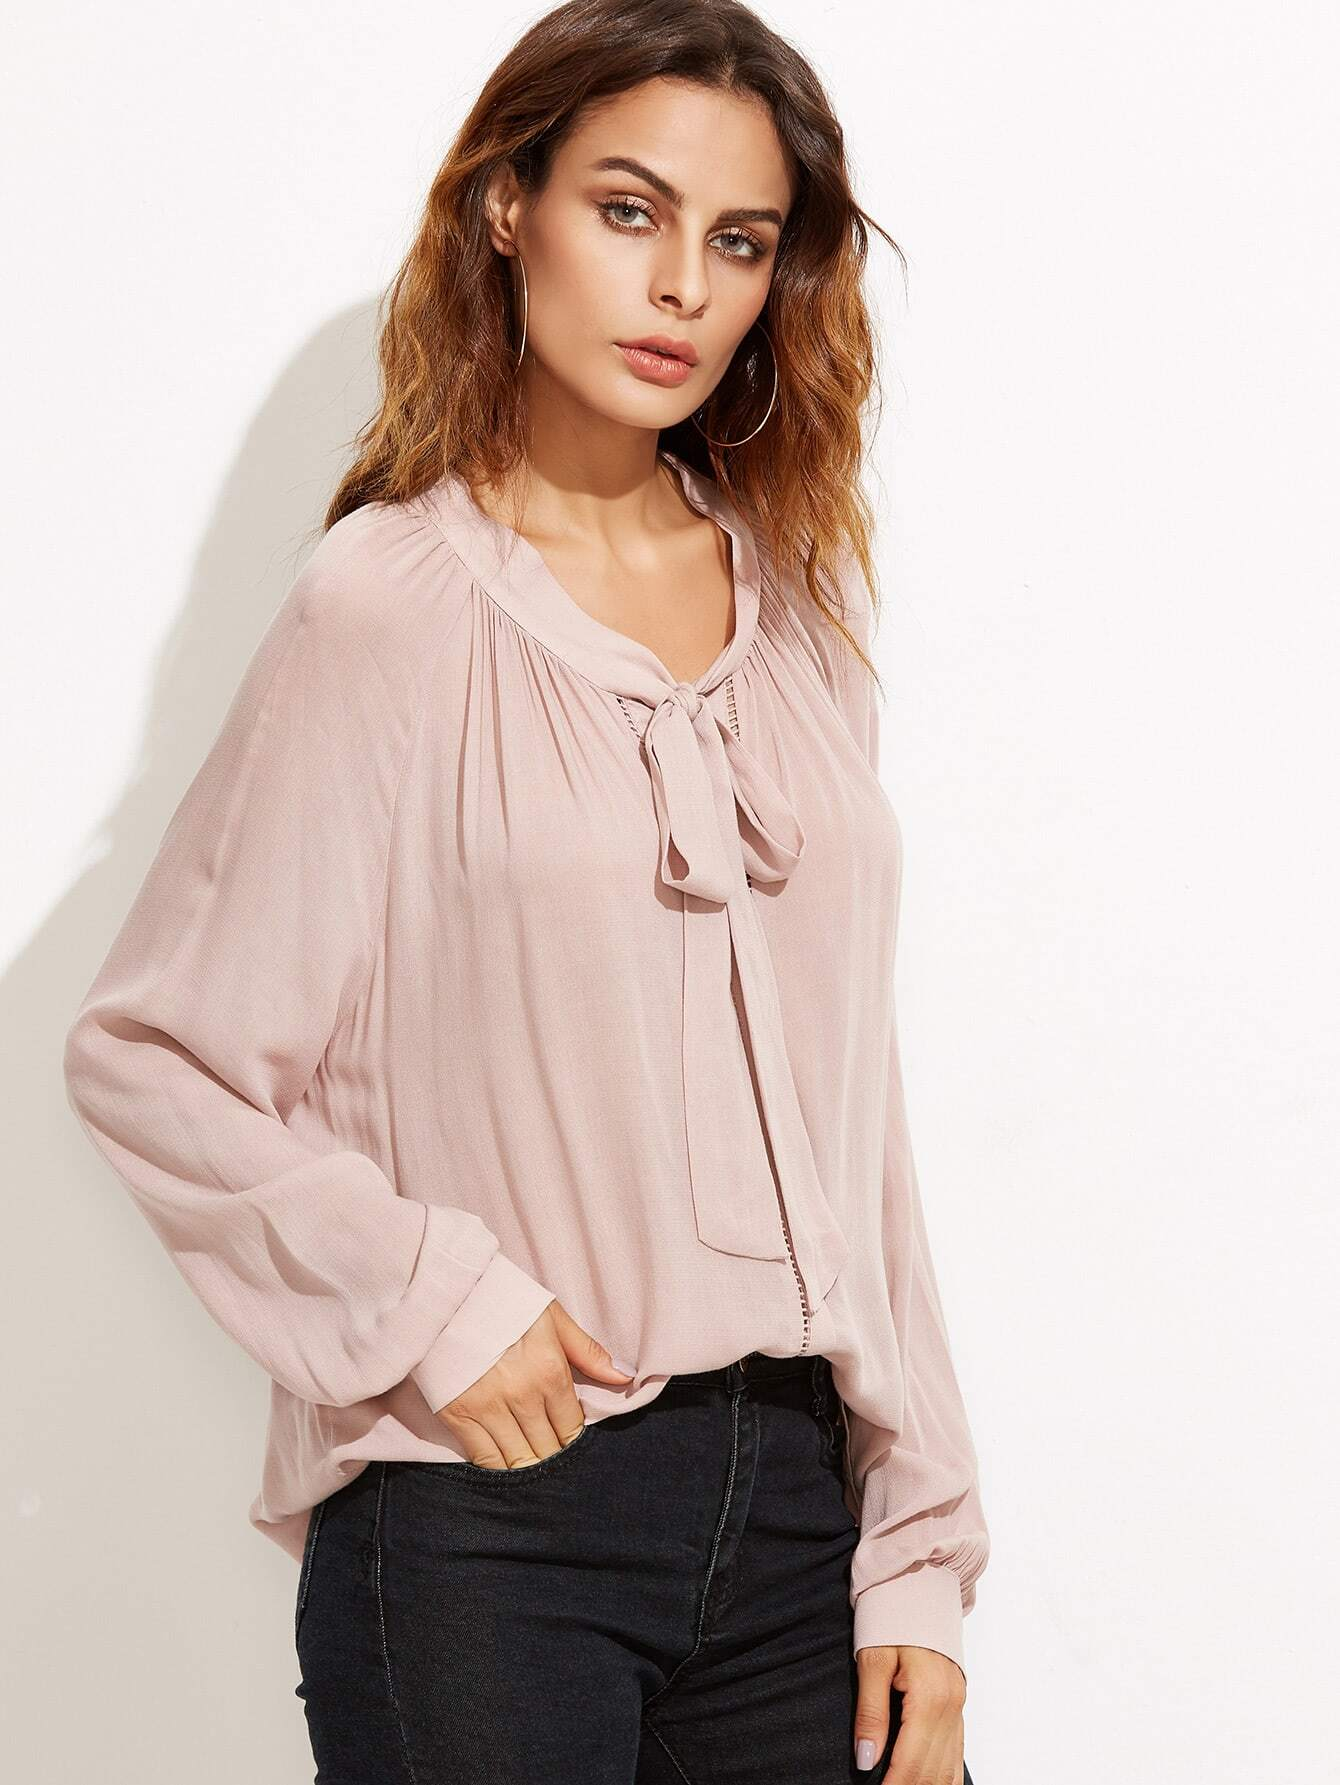 Pink Tie Neck Blouse 76